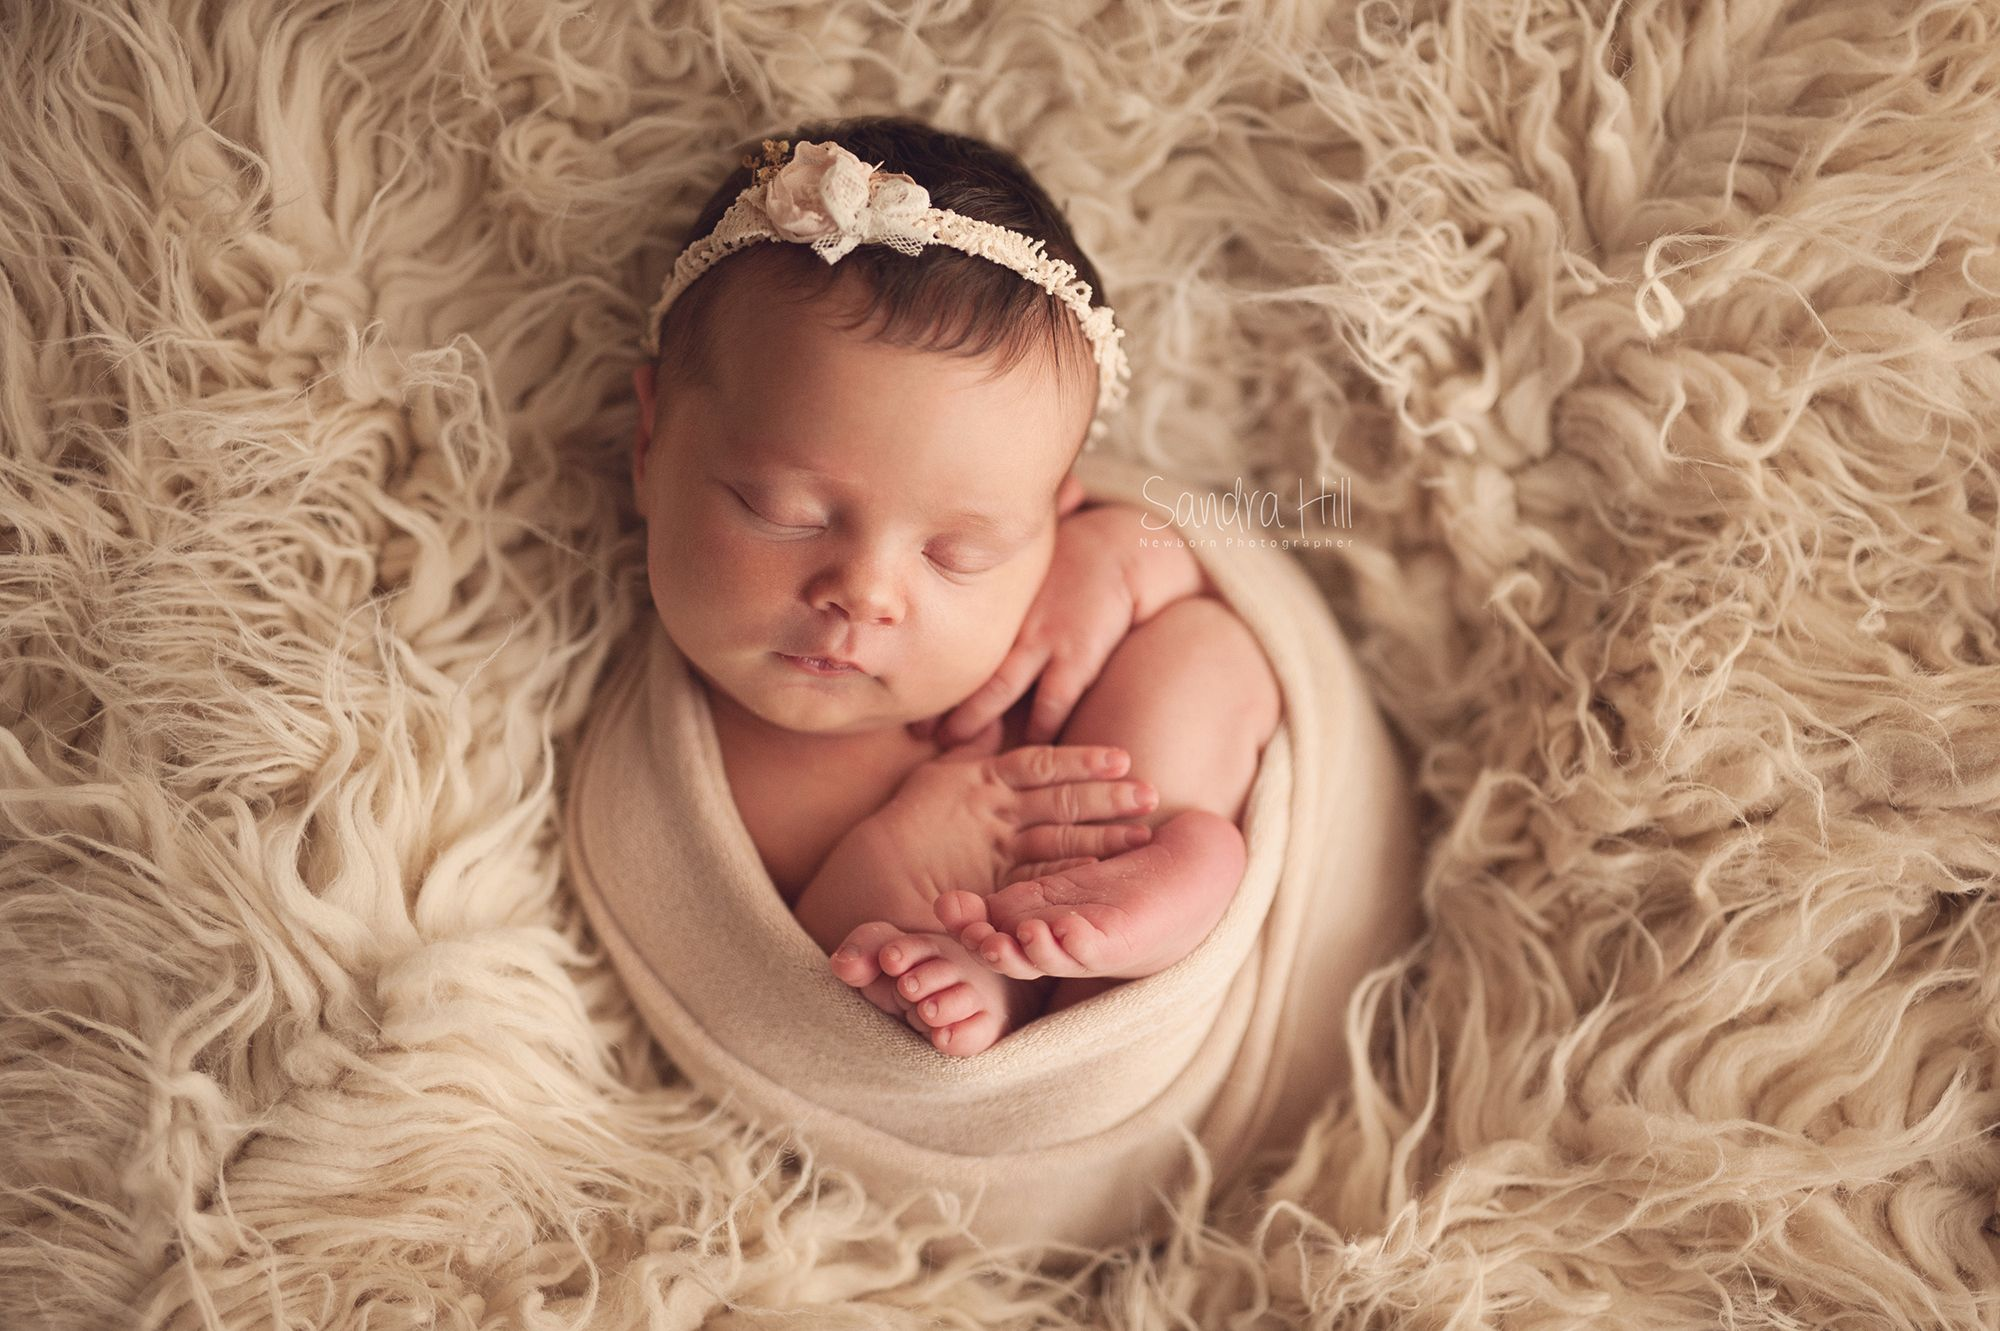 Sandra hill photography pretty baby girl brantford ontario newborn photographer hamilton ontario